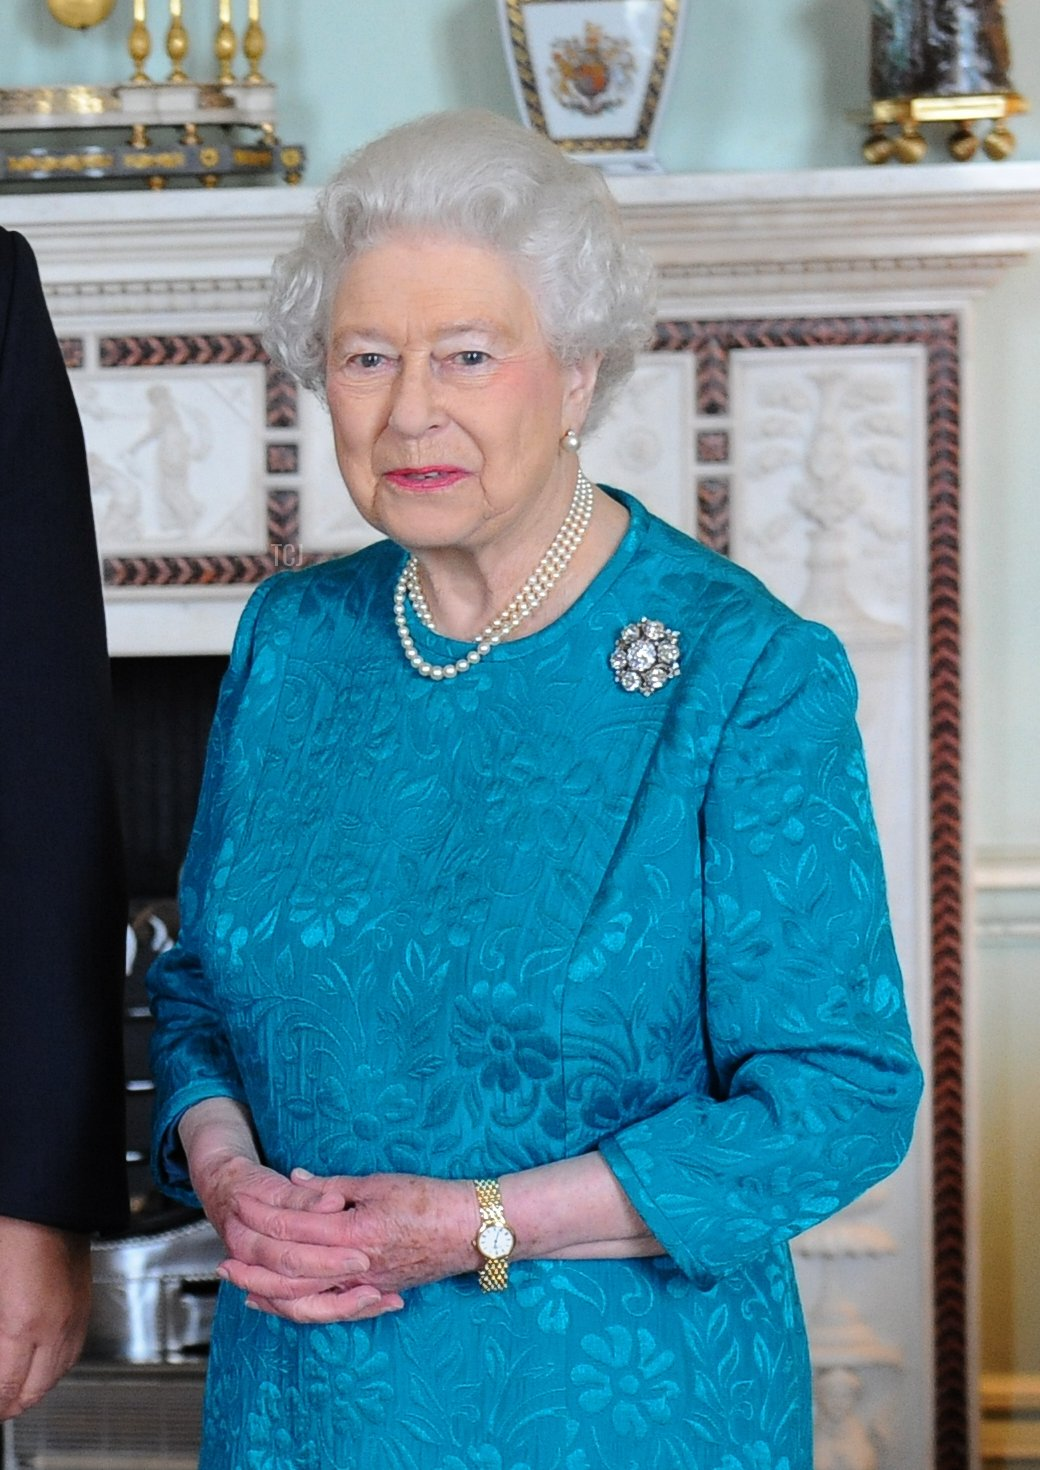 Queen Elizabeth II meets the King Tupou VI of Tonga at Buckingham Palace on October 10, 2013 in London, England